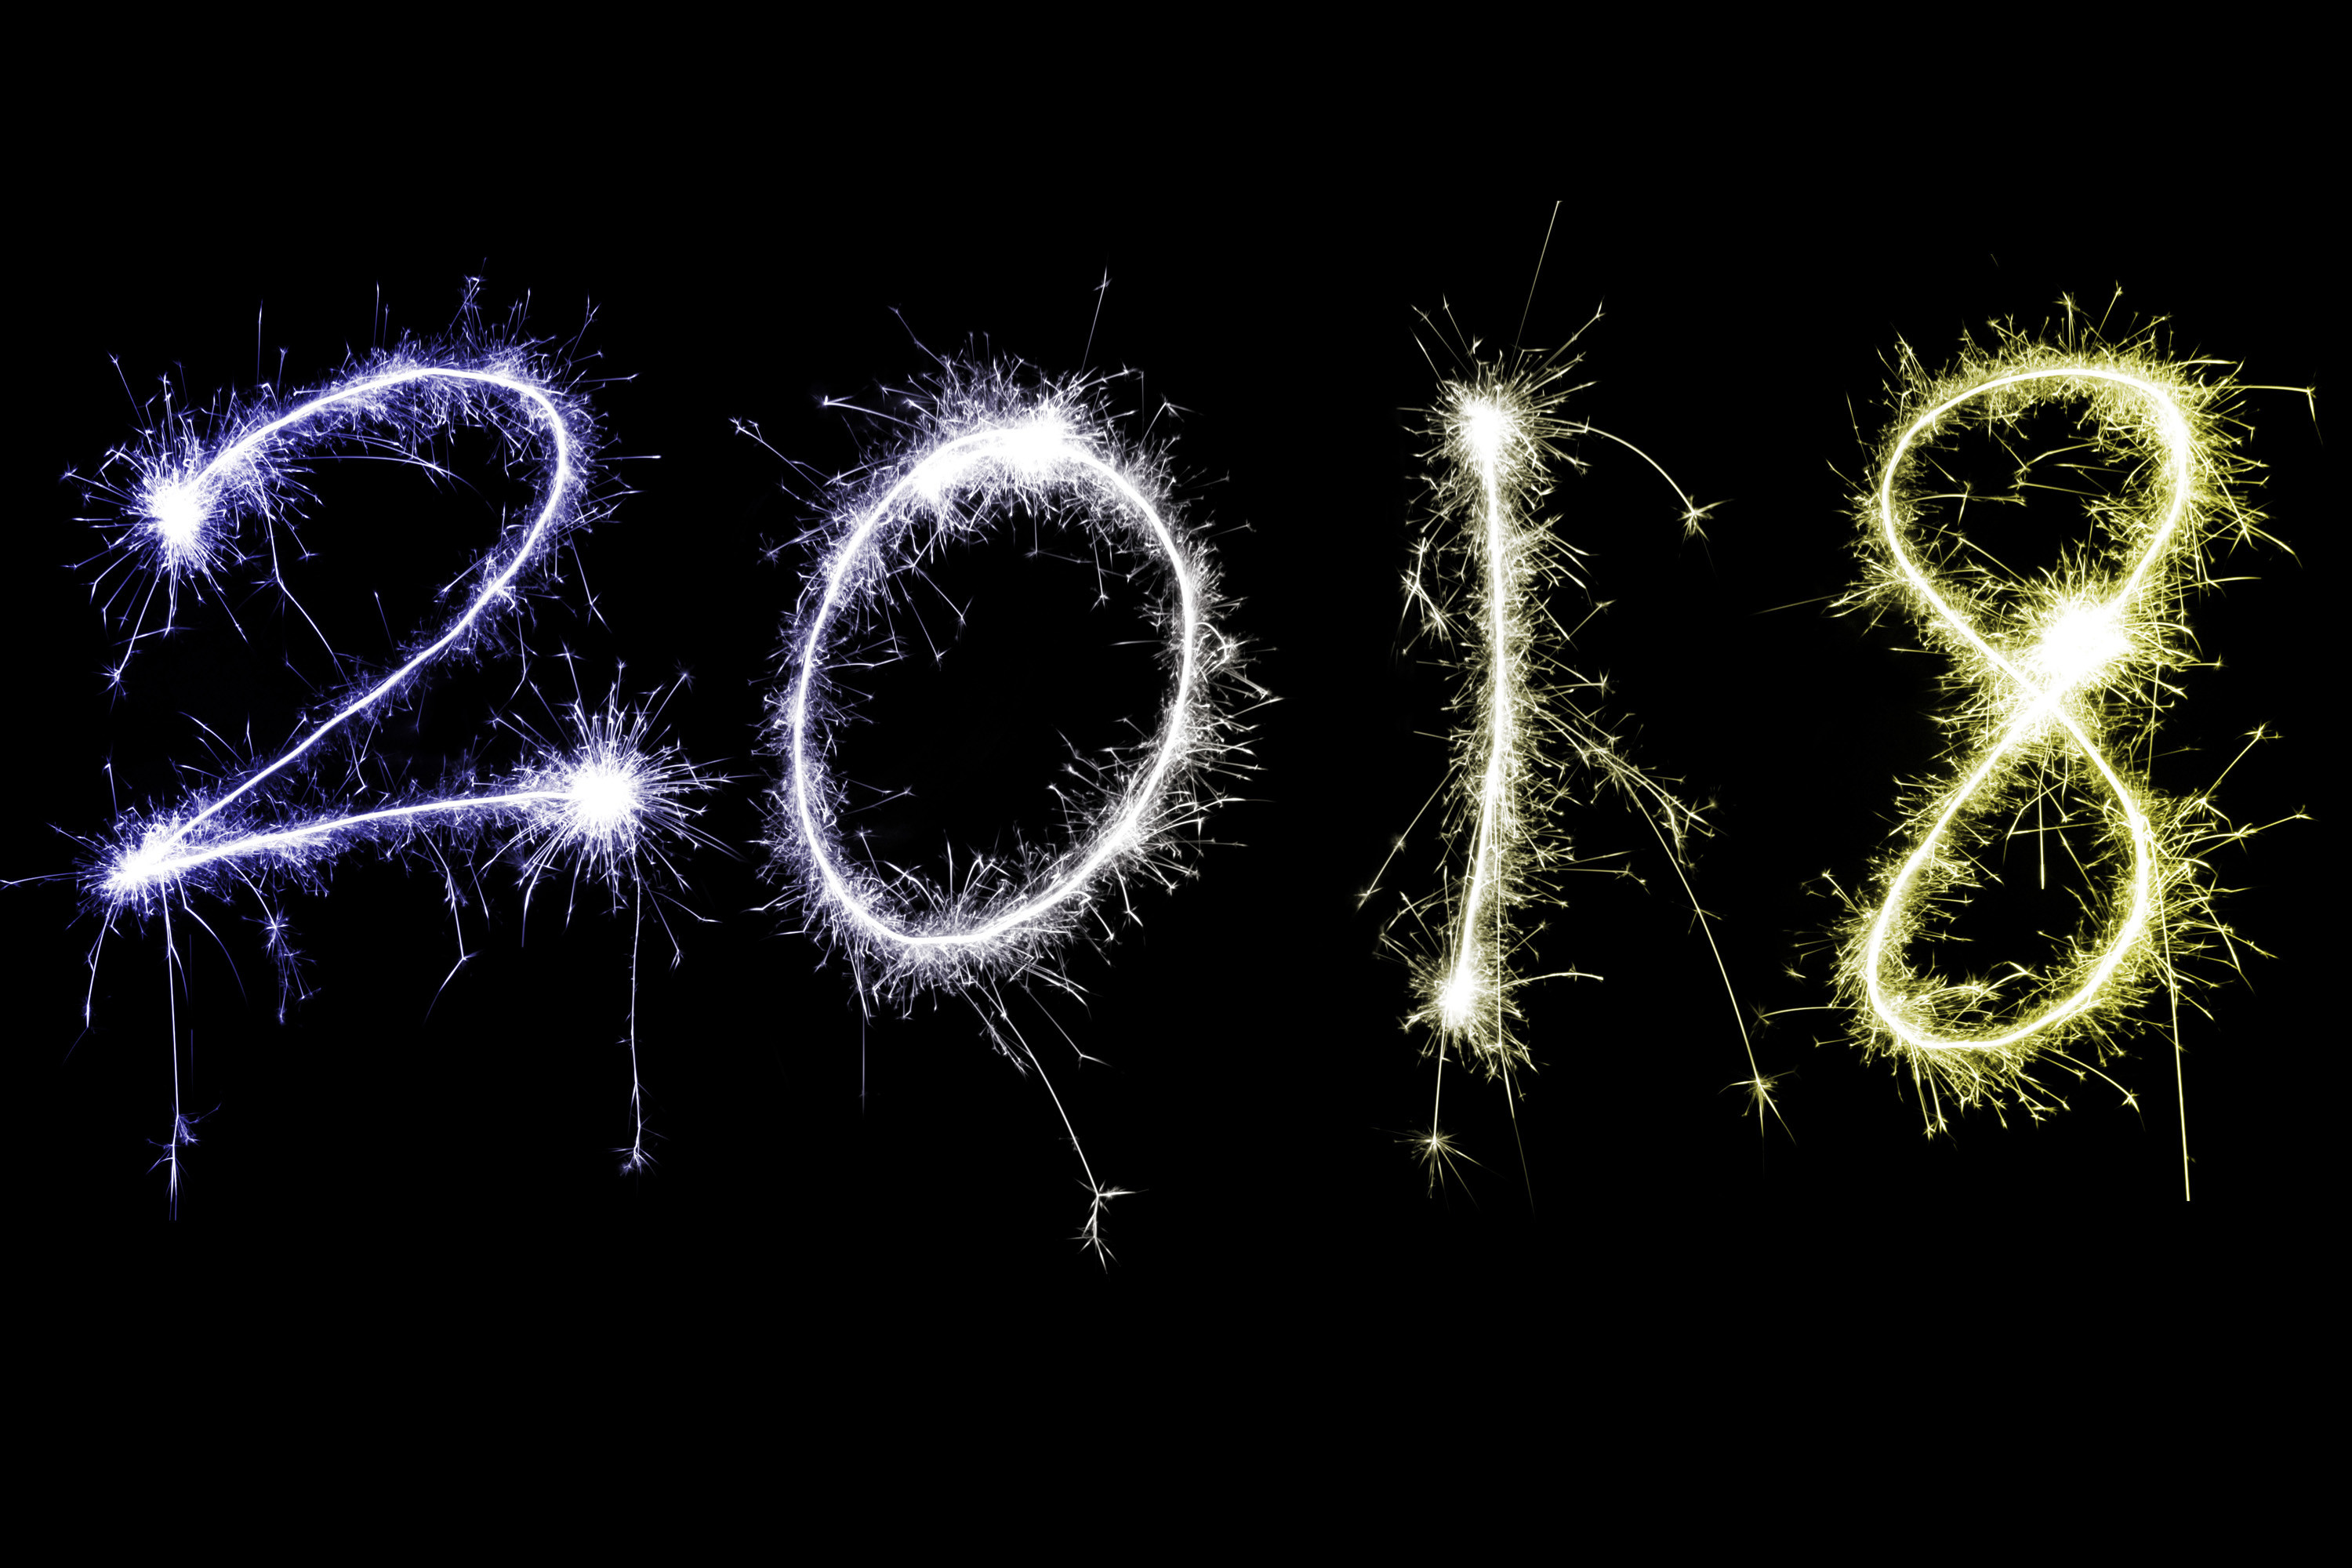 happy new year banner background images 2018 1920x1080 happy new year banner